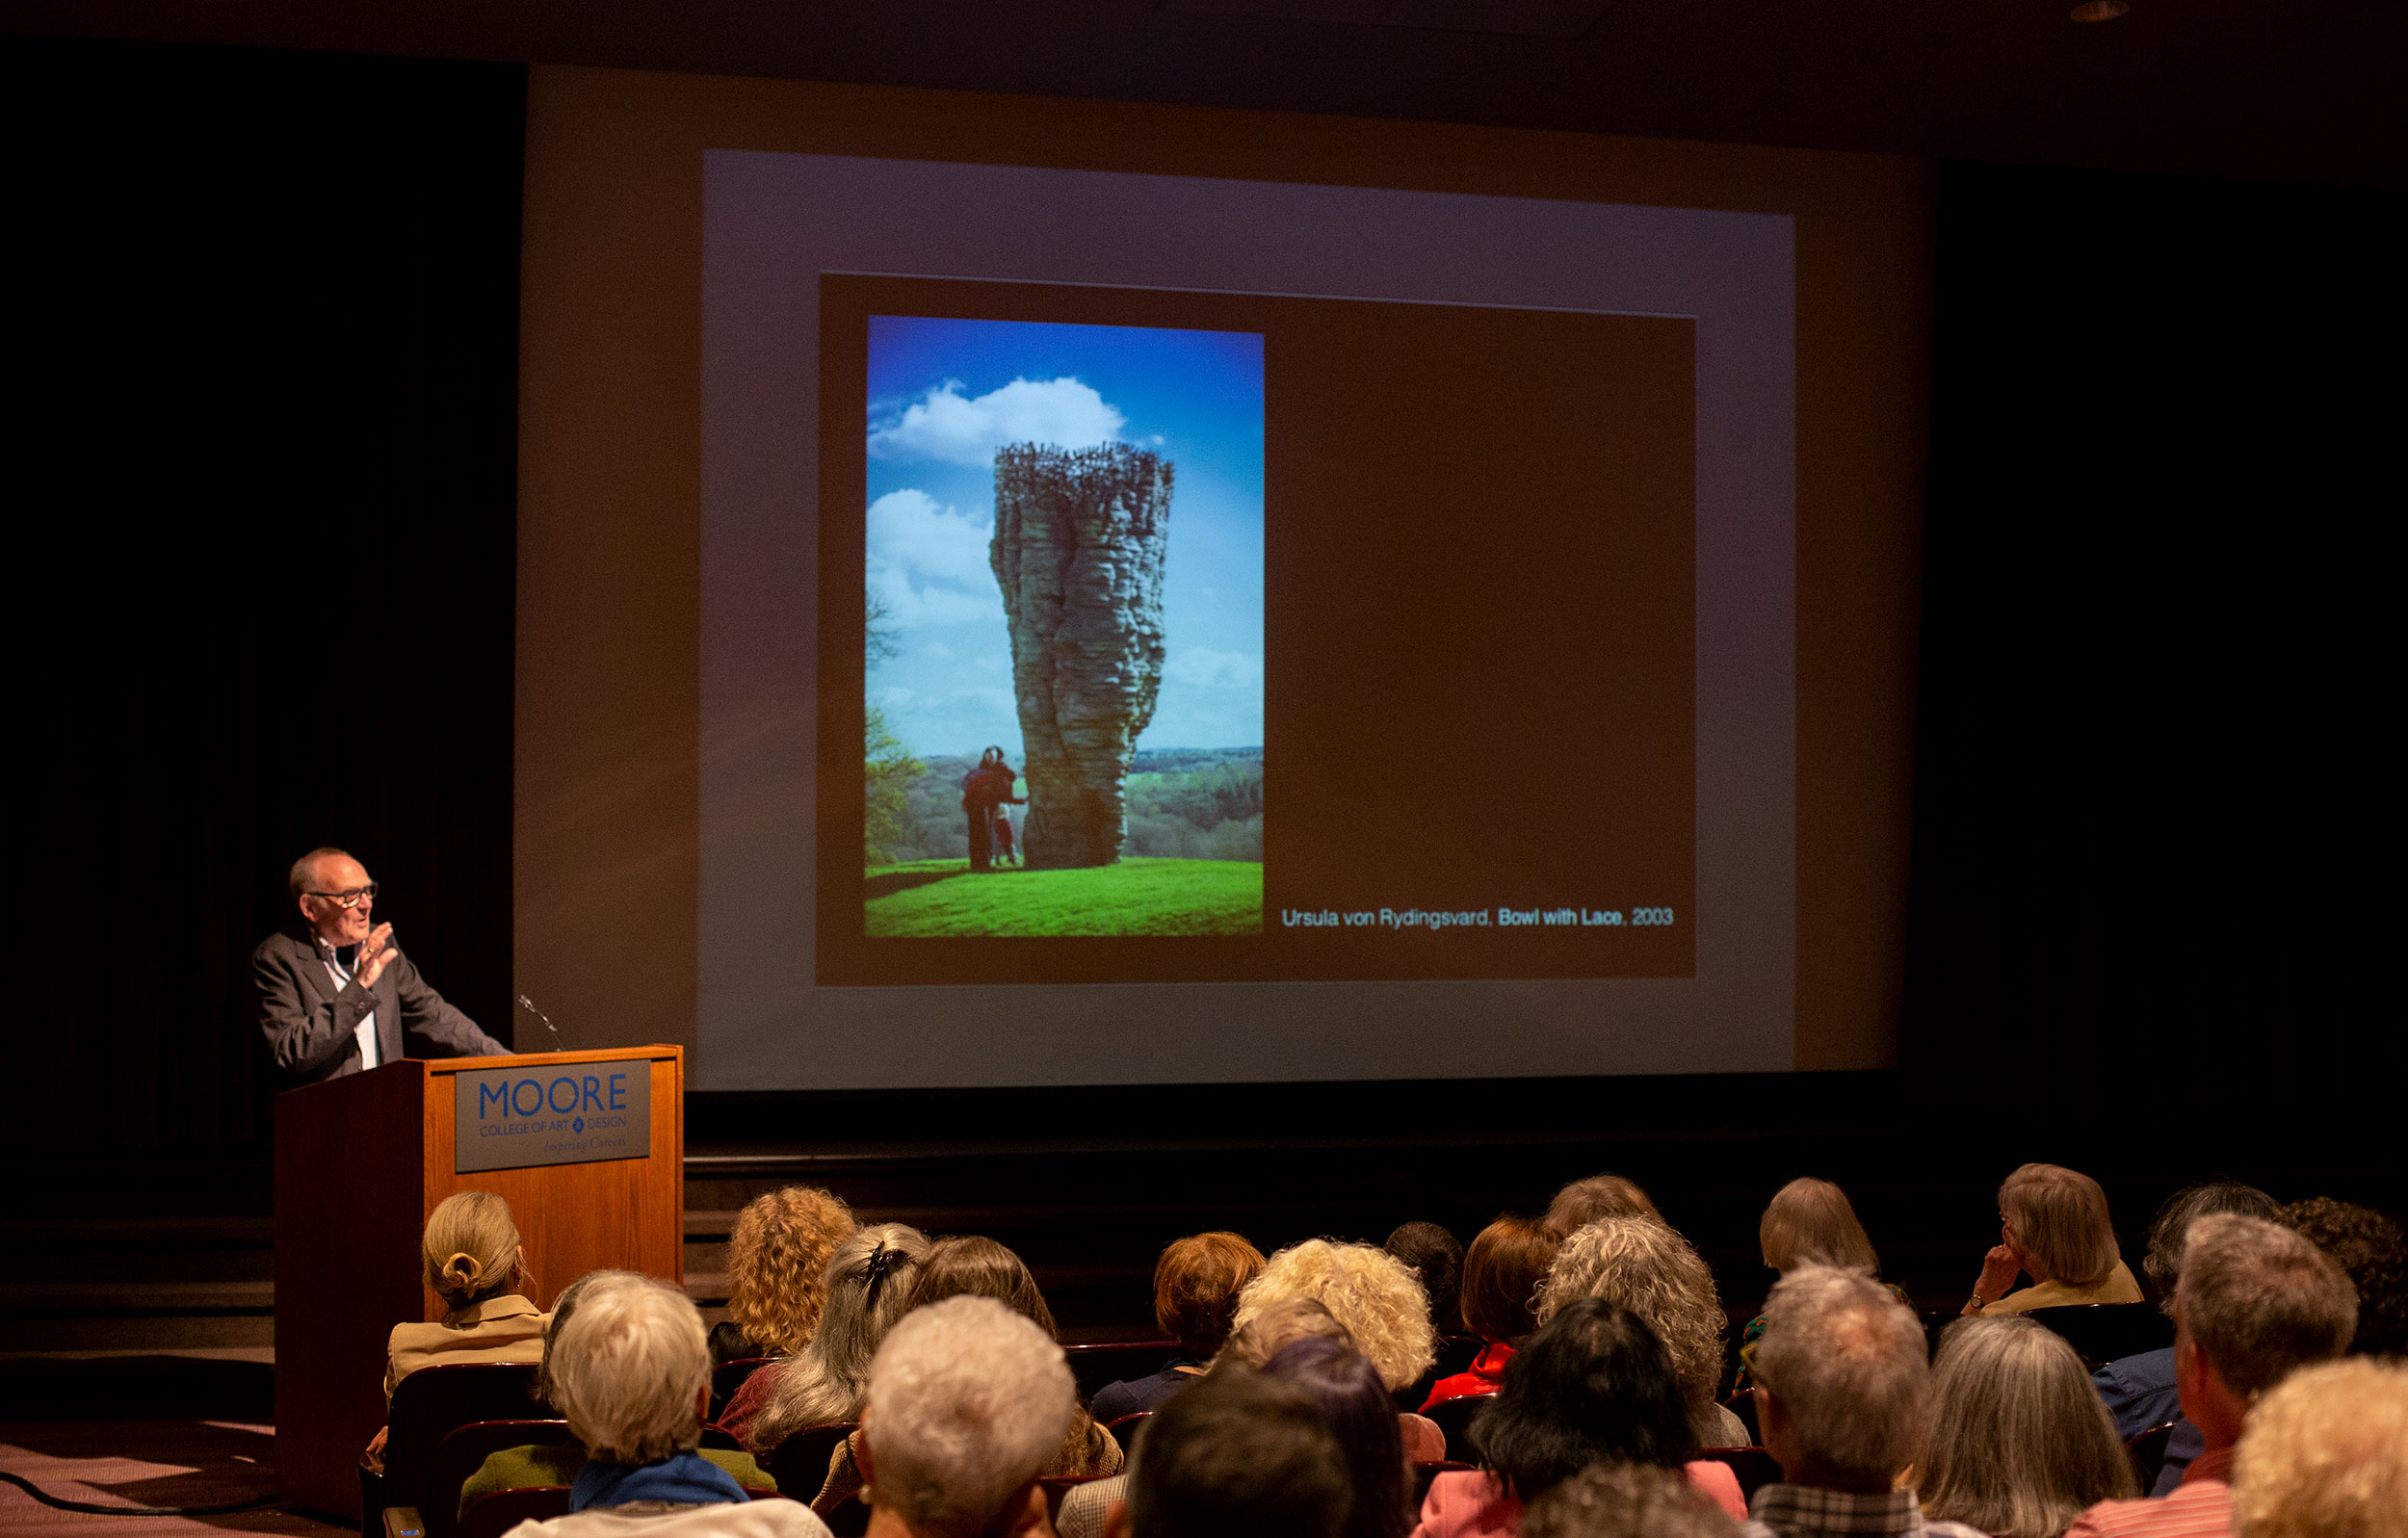 Yorkshire Sculpture Park's Peter Murray speaks at the Assocation's Annual Meeting at Moore College of Art & Design, Philadelphia